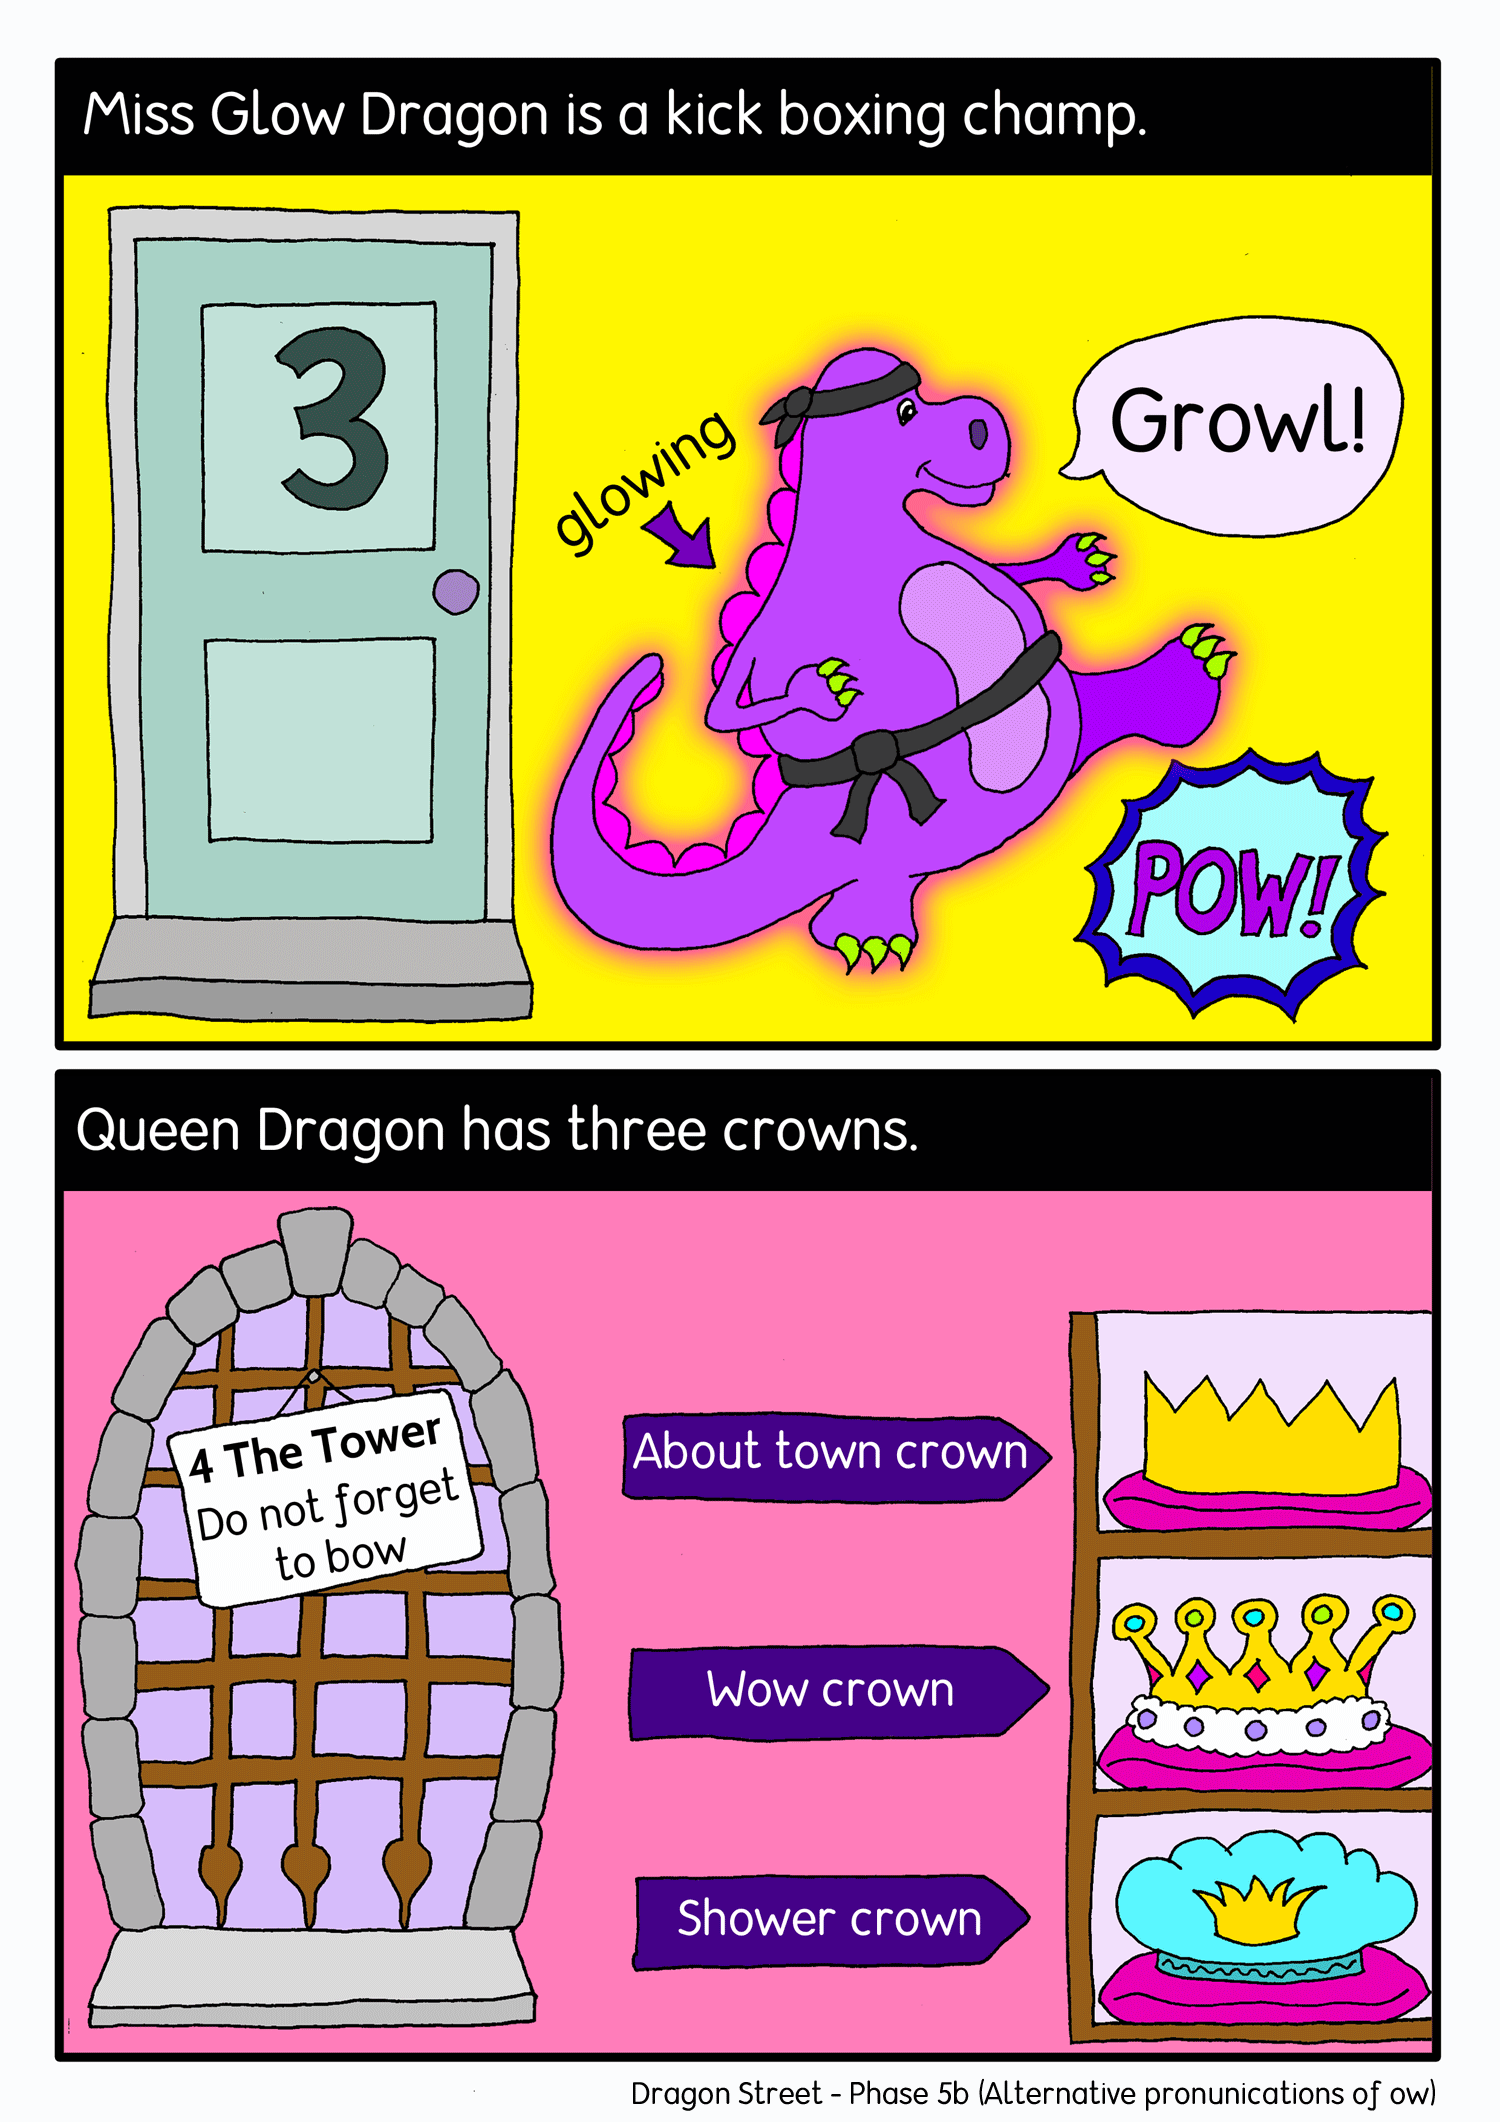 Dragon street comic panel2